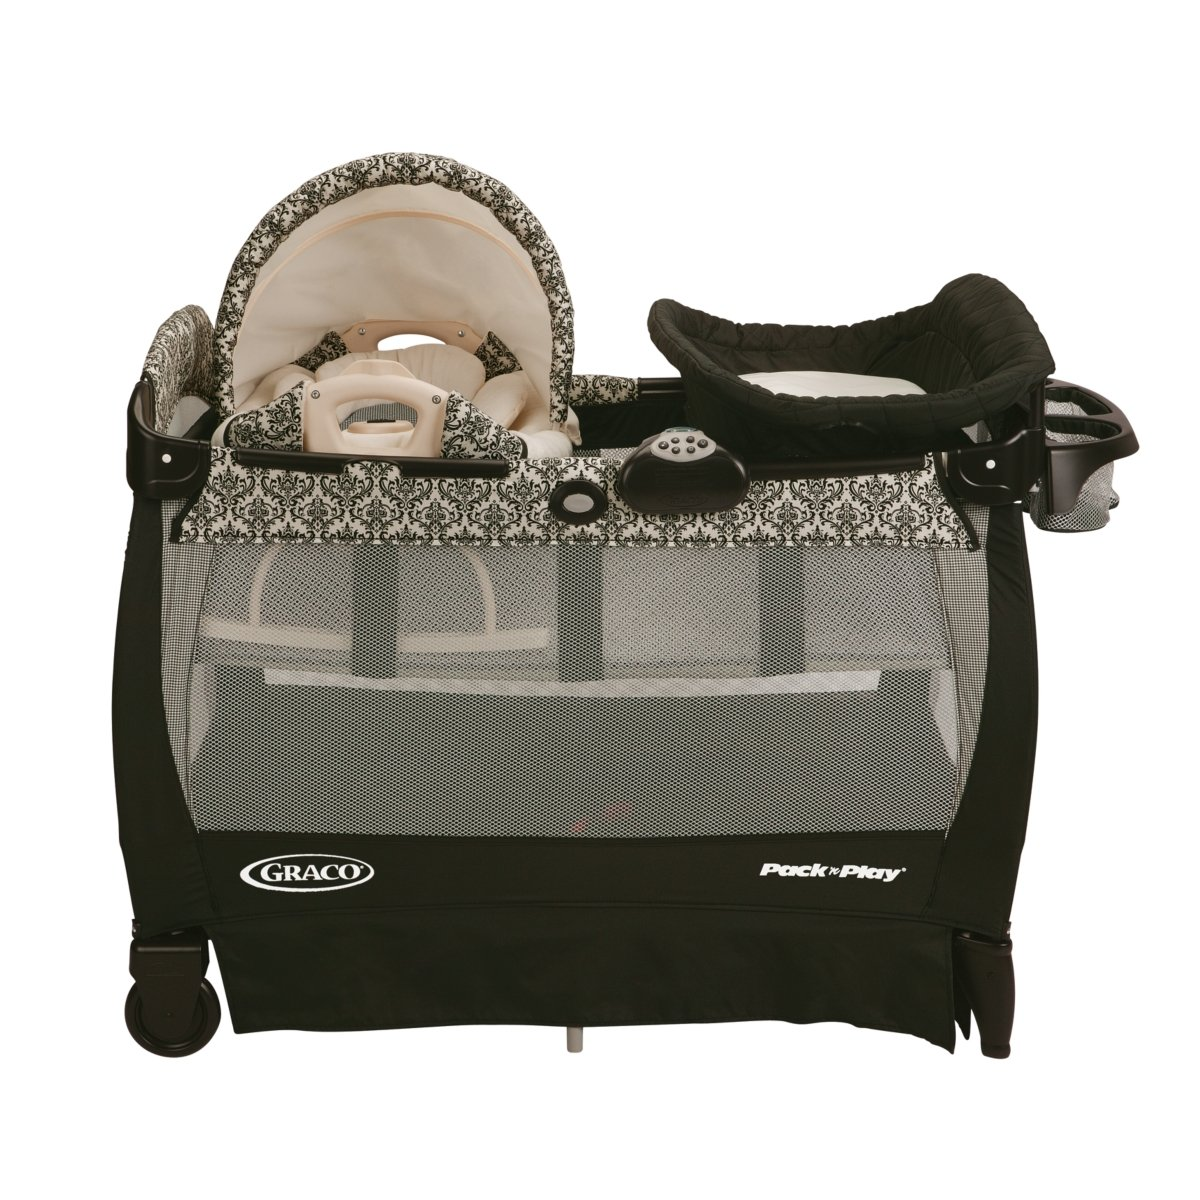 Graco Pack 'n Play Playard with Cuddle Cove Rocking Seat, Rittenhouse Review